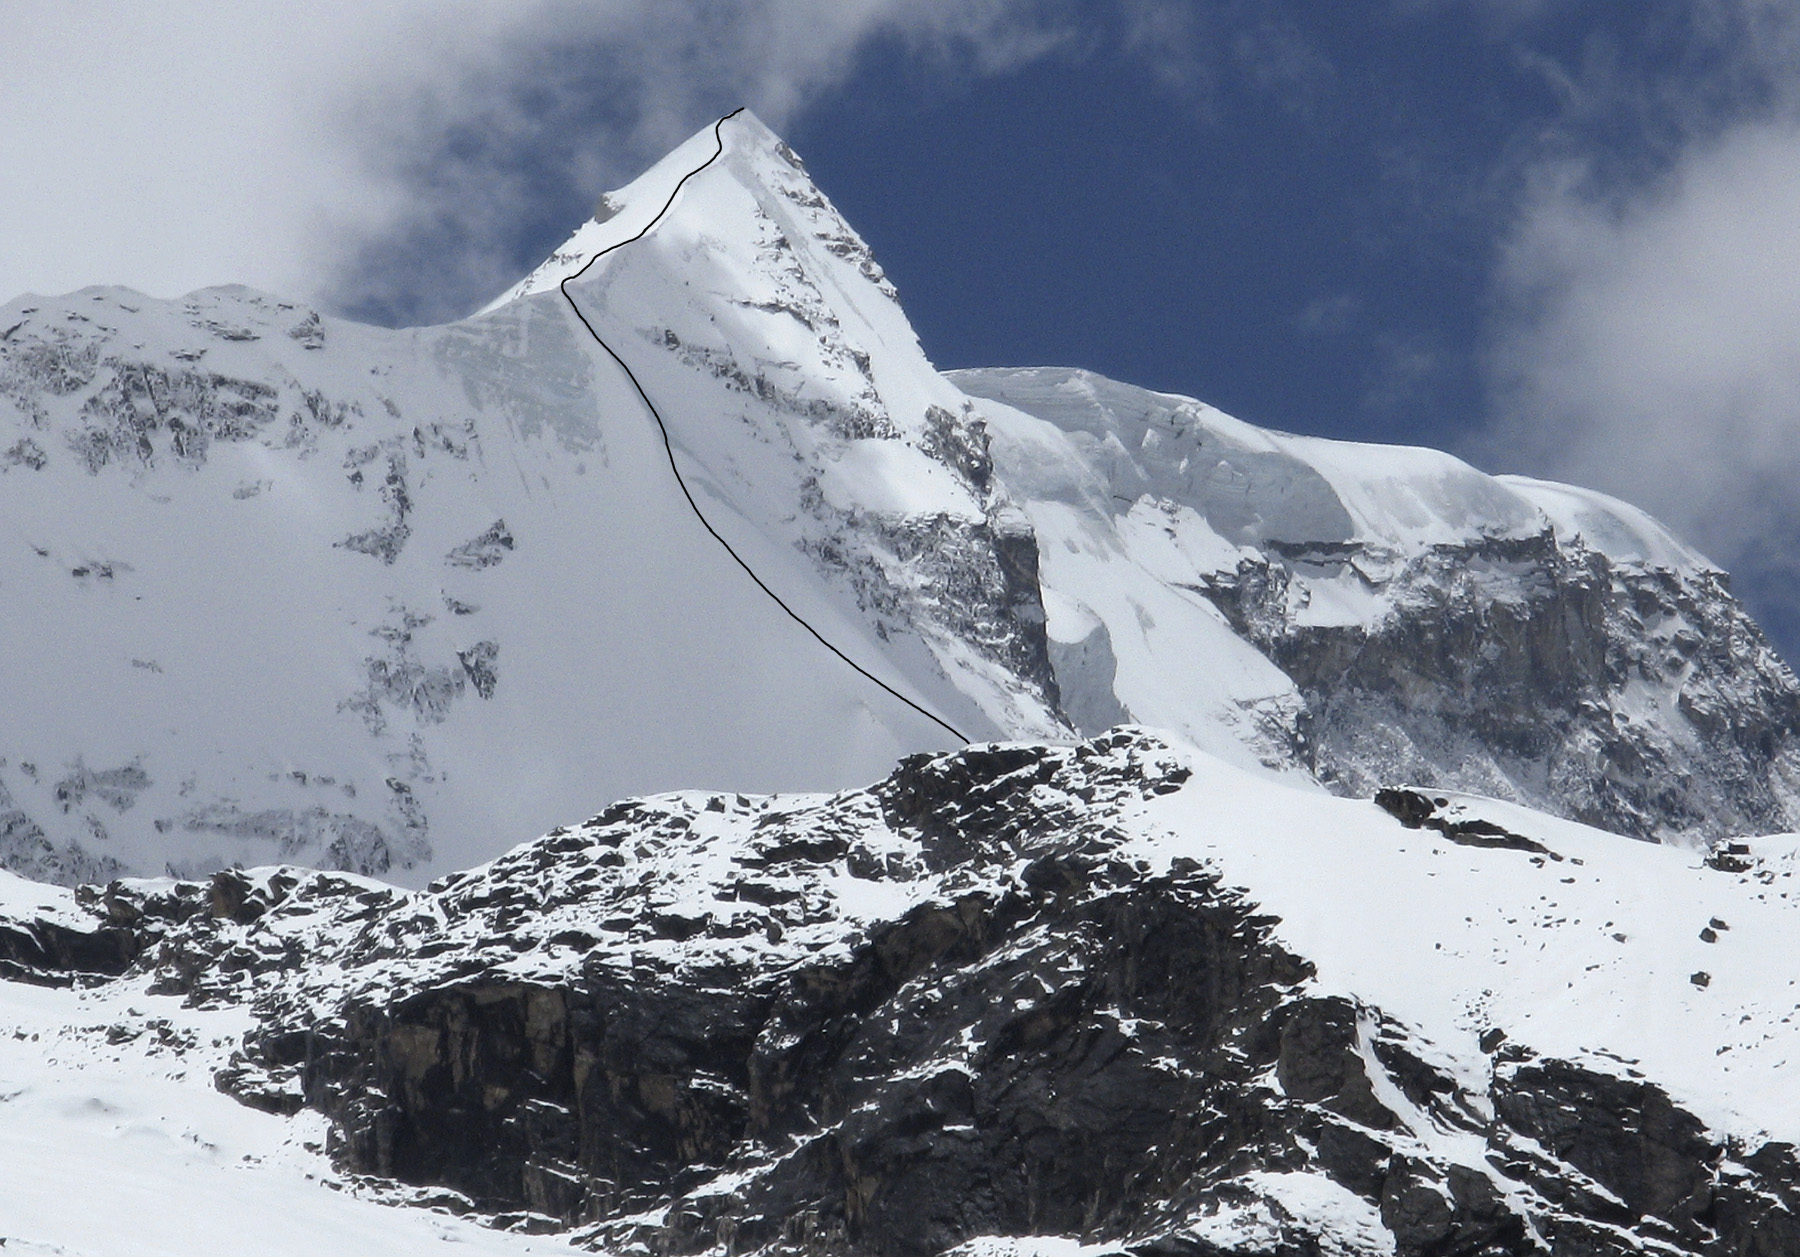 Upper section of the new Portuguese route on the north spur of Ekdant. The main summit of Parvati Parvat is just off picture to the right. Daniela Teixeira